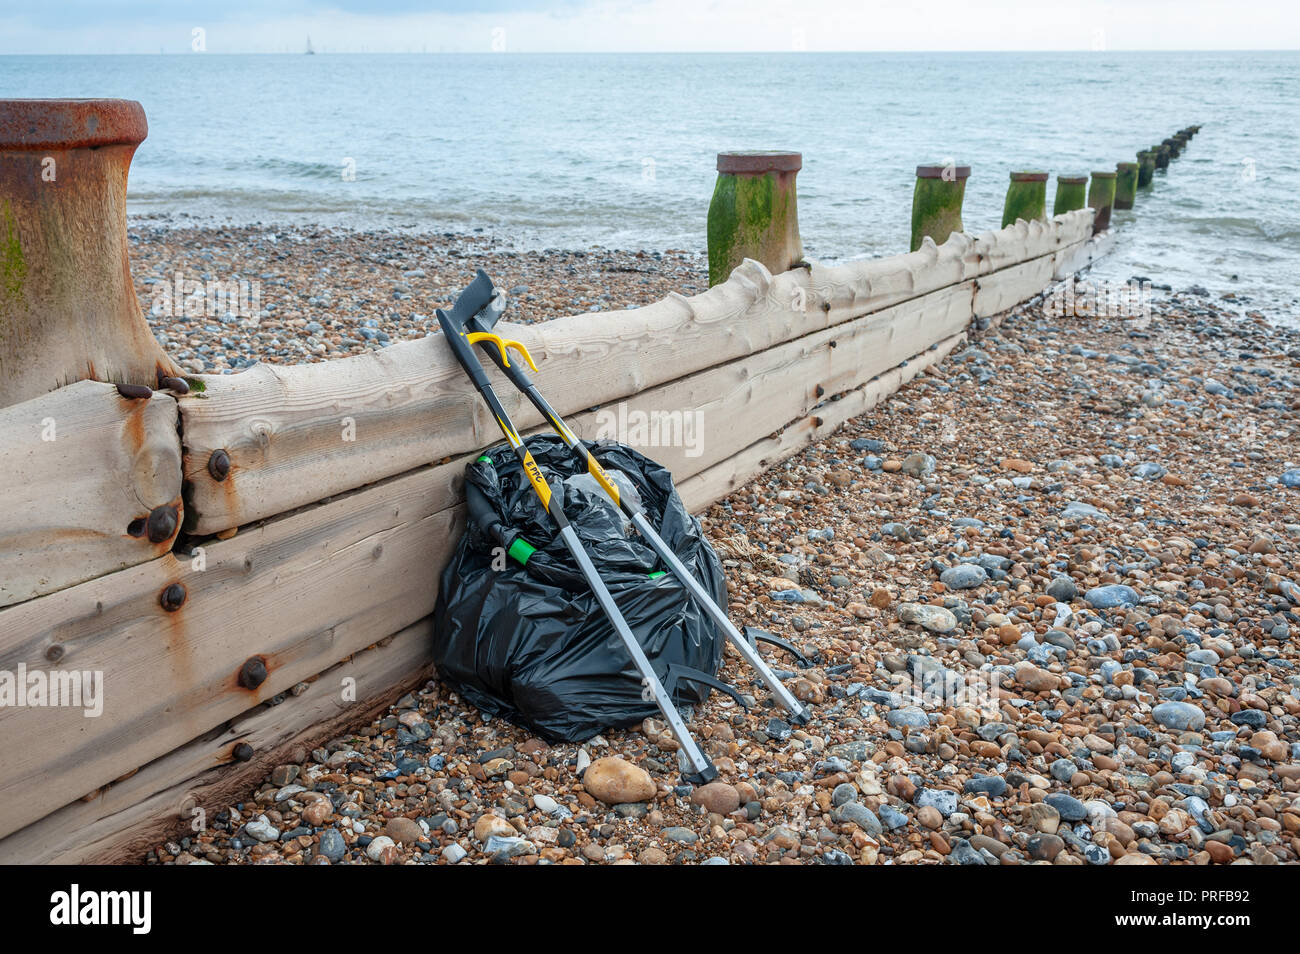 Beach clean up. A black bag full of rubbish collected from the beach and two litter pick up tools leaning on a wooden groyne on the beach. - Stock Image